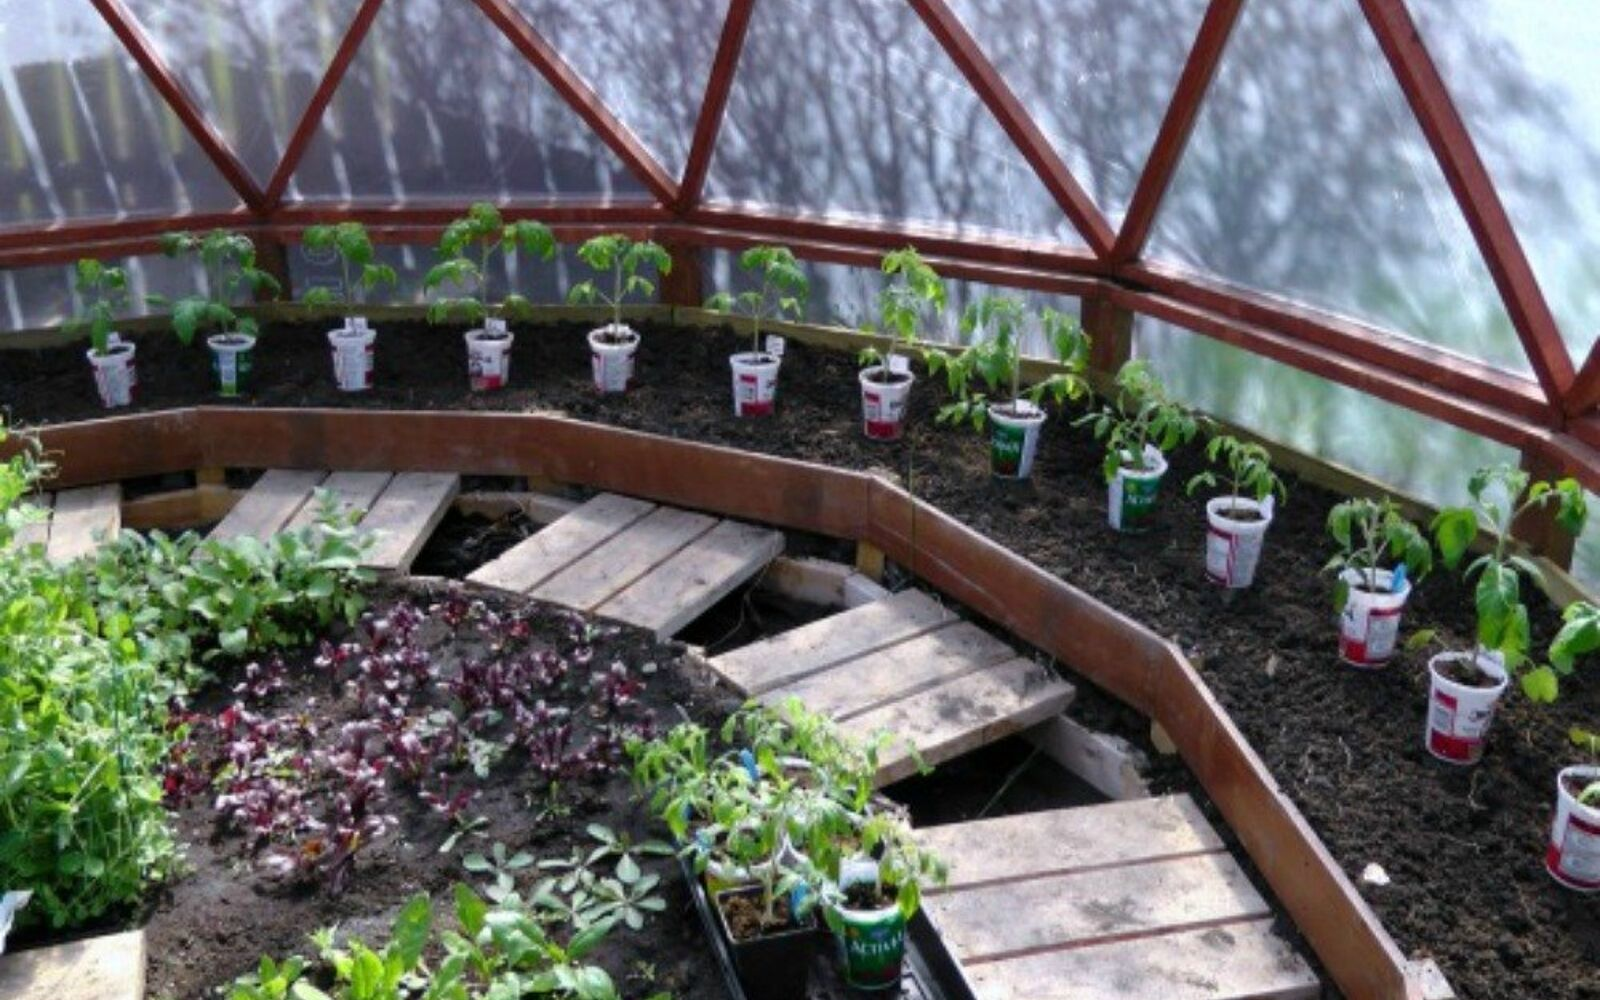 s why everyone is saving their empty food containers, repurposing upcycling, They make perfect tomato planters